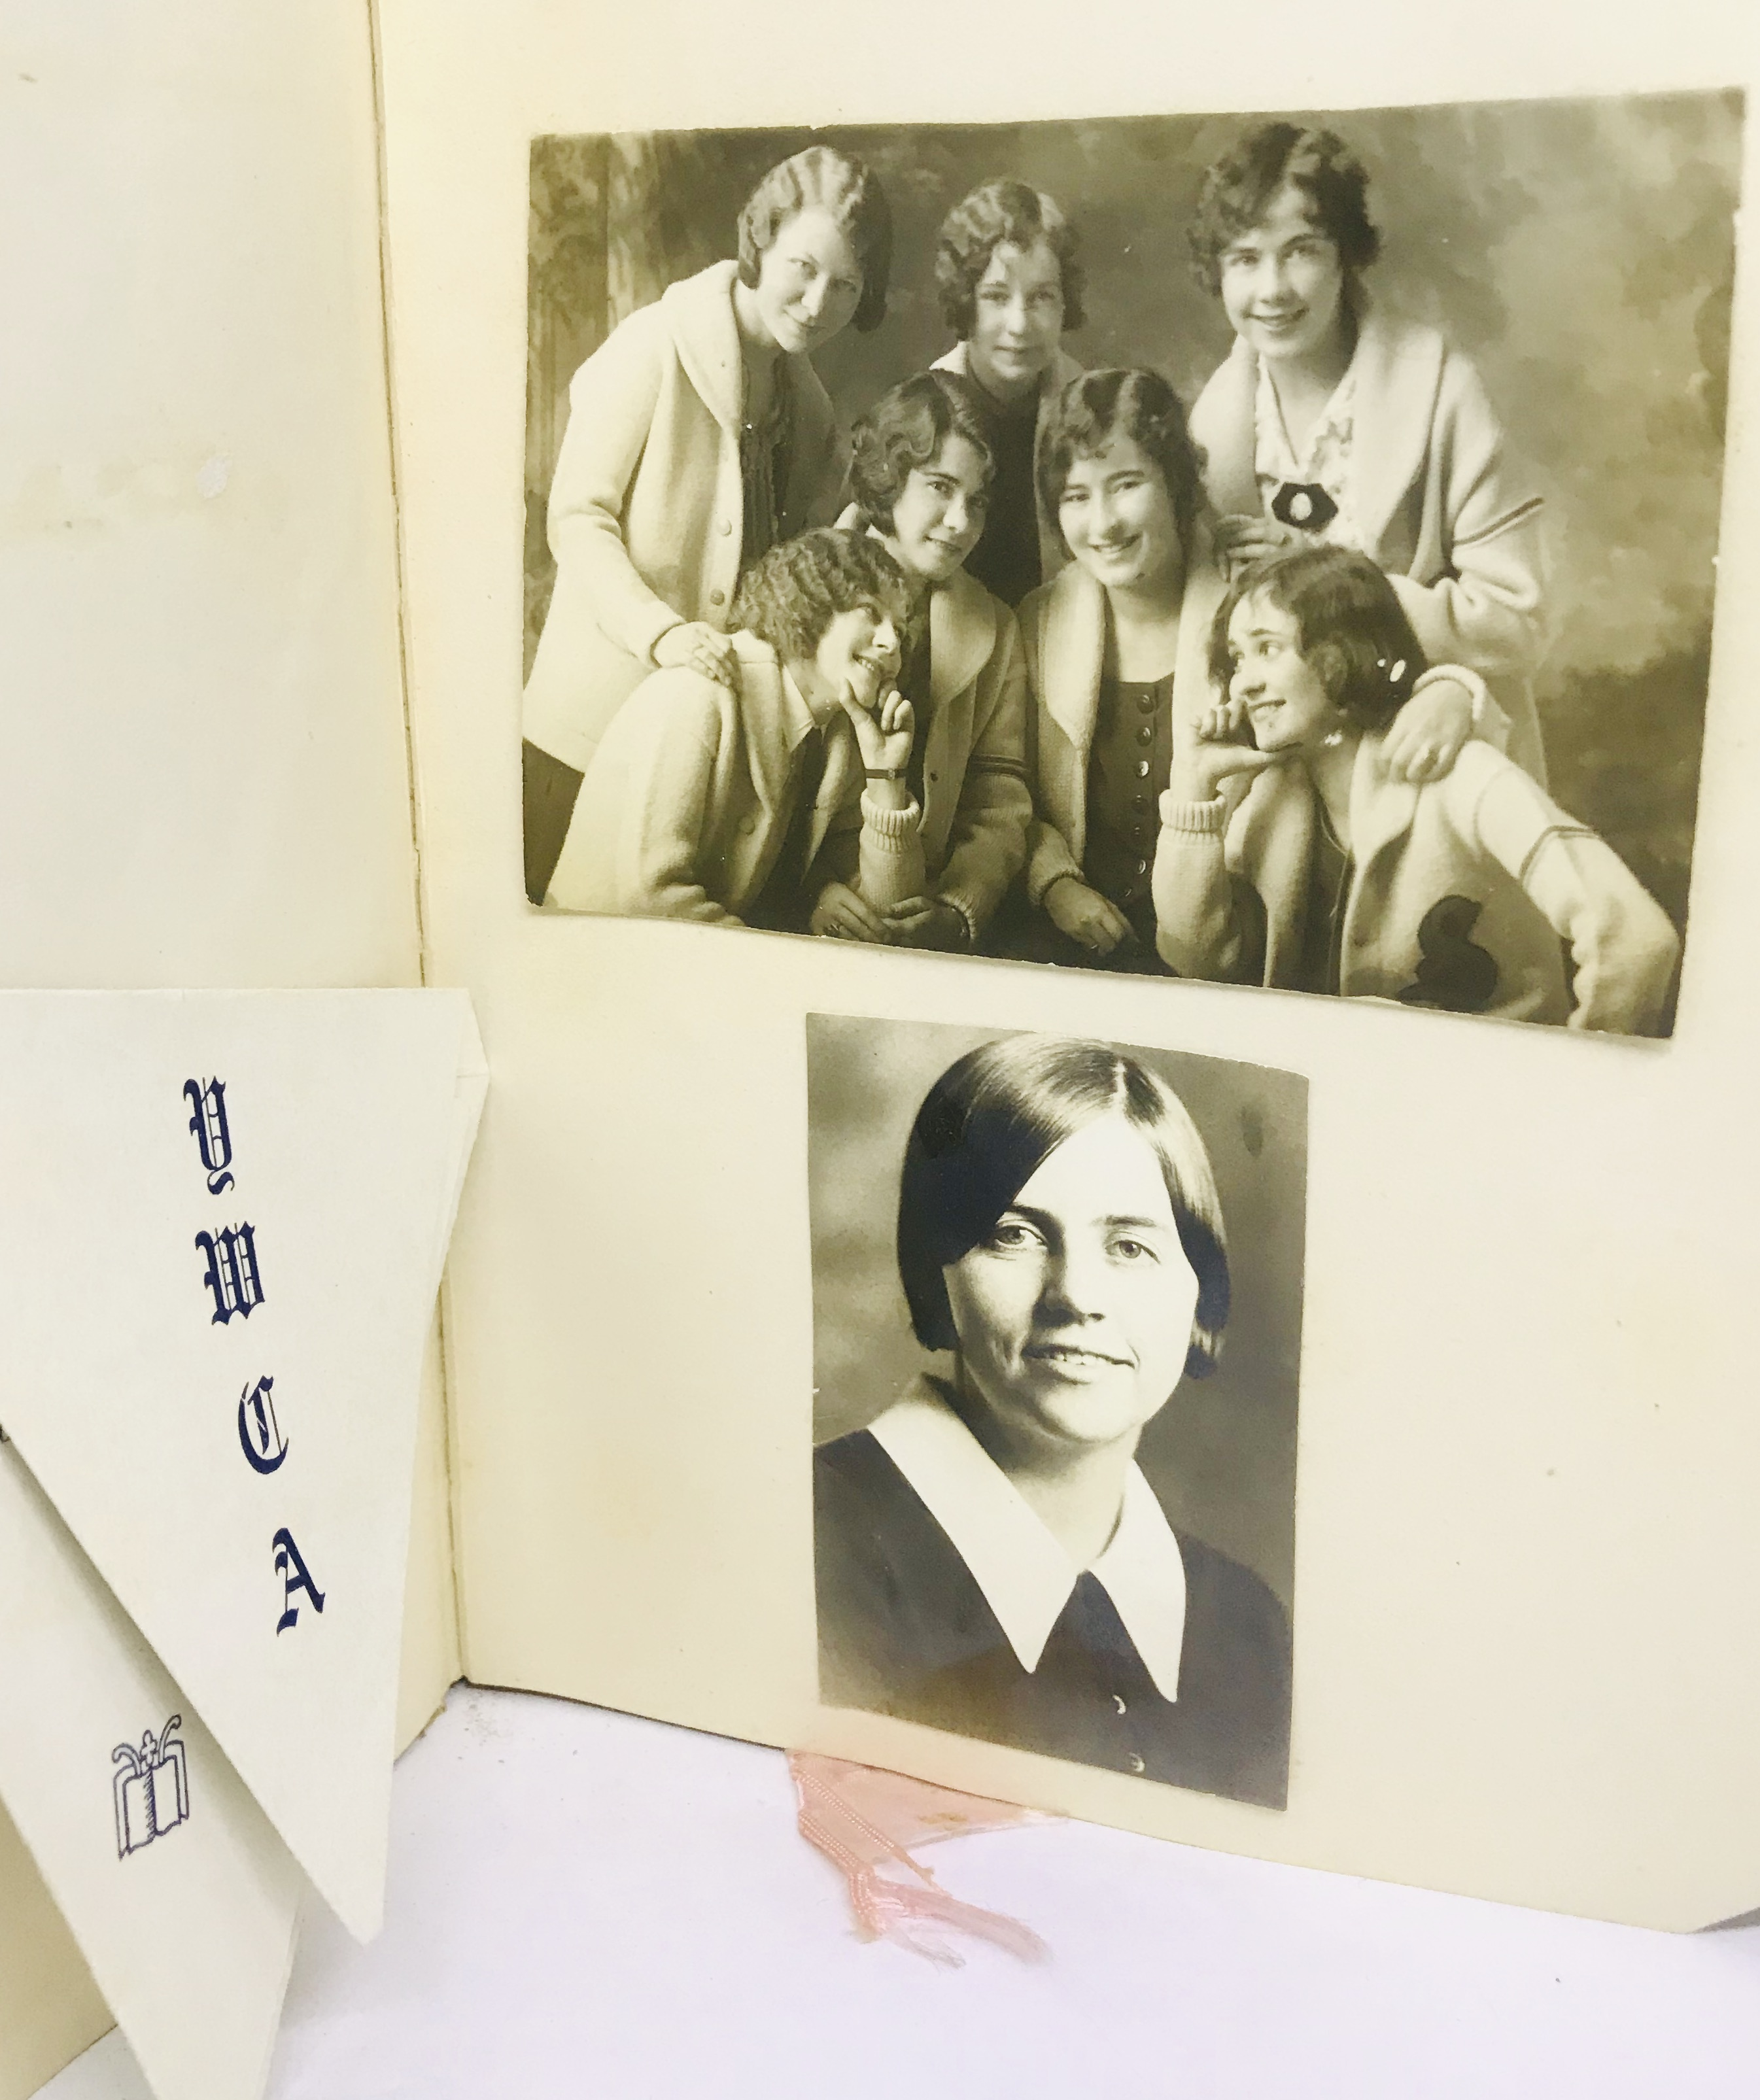 SCRAPBOOK] Young Woman's Photo & Scrapbook - Sterling College